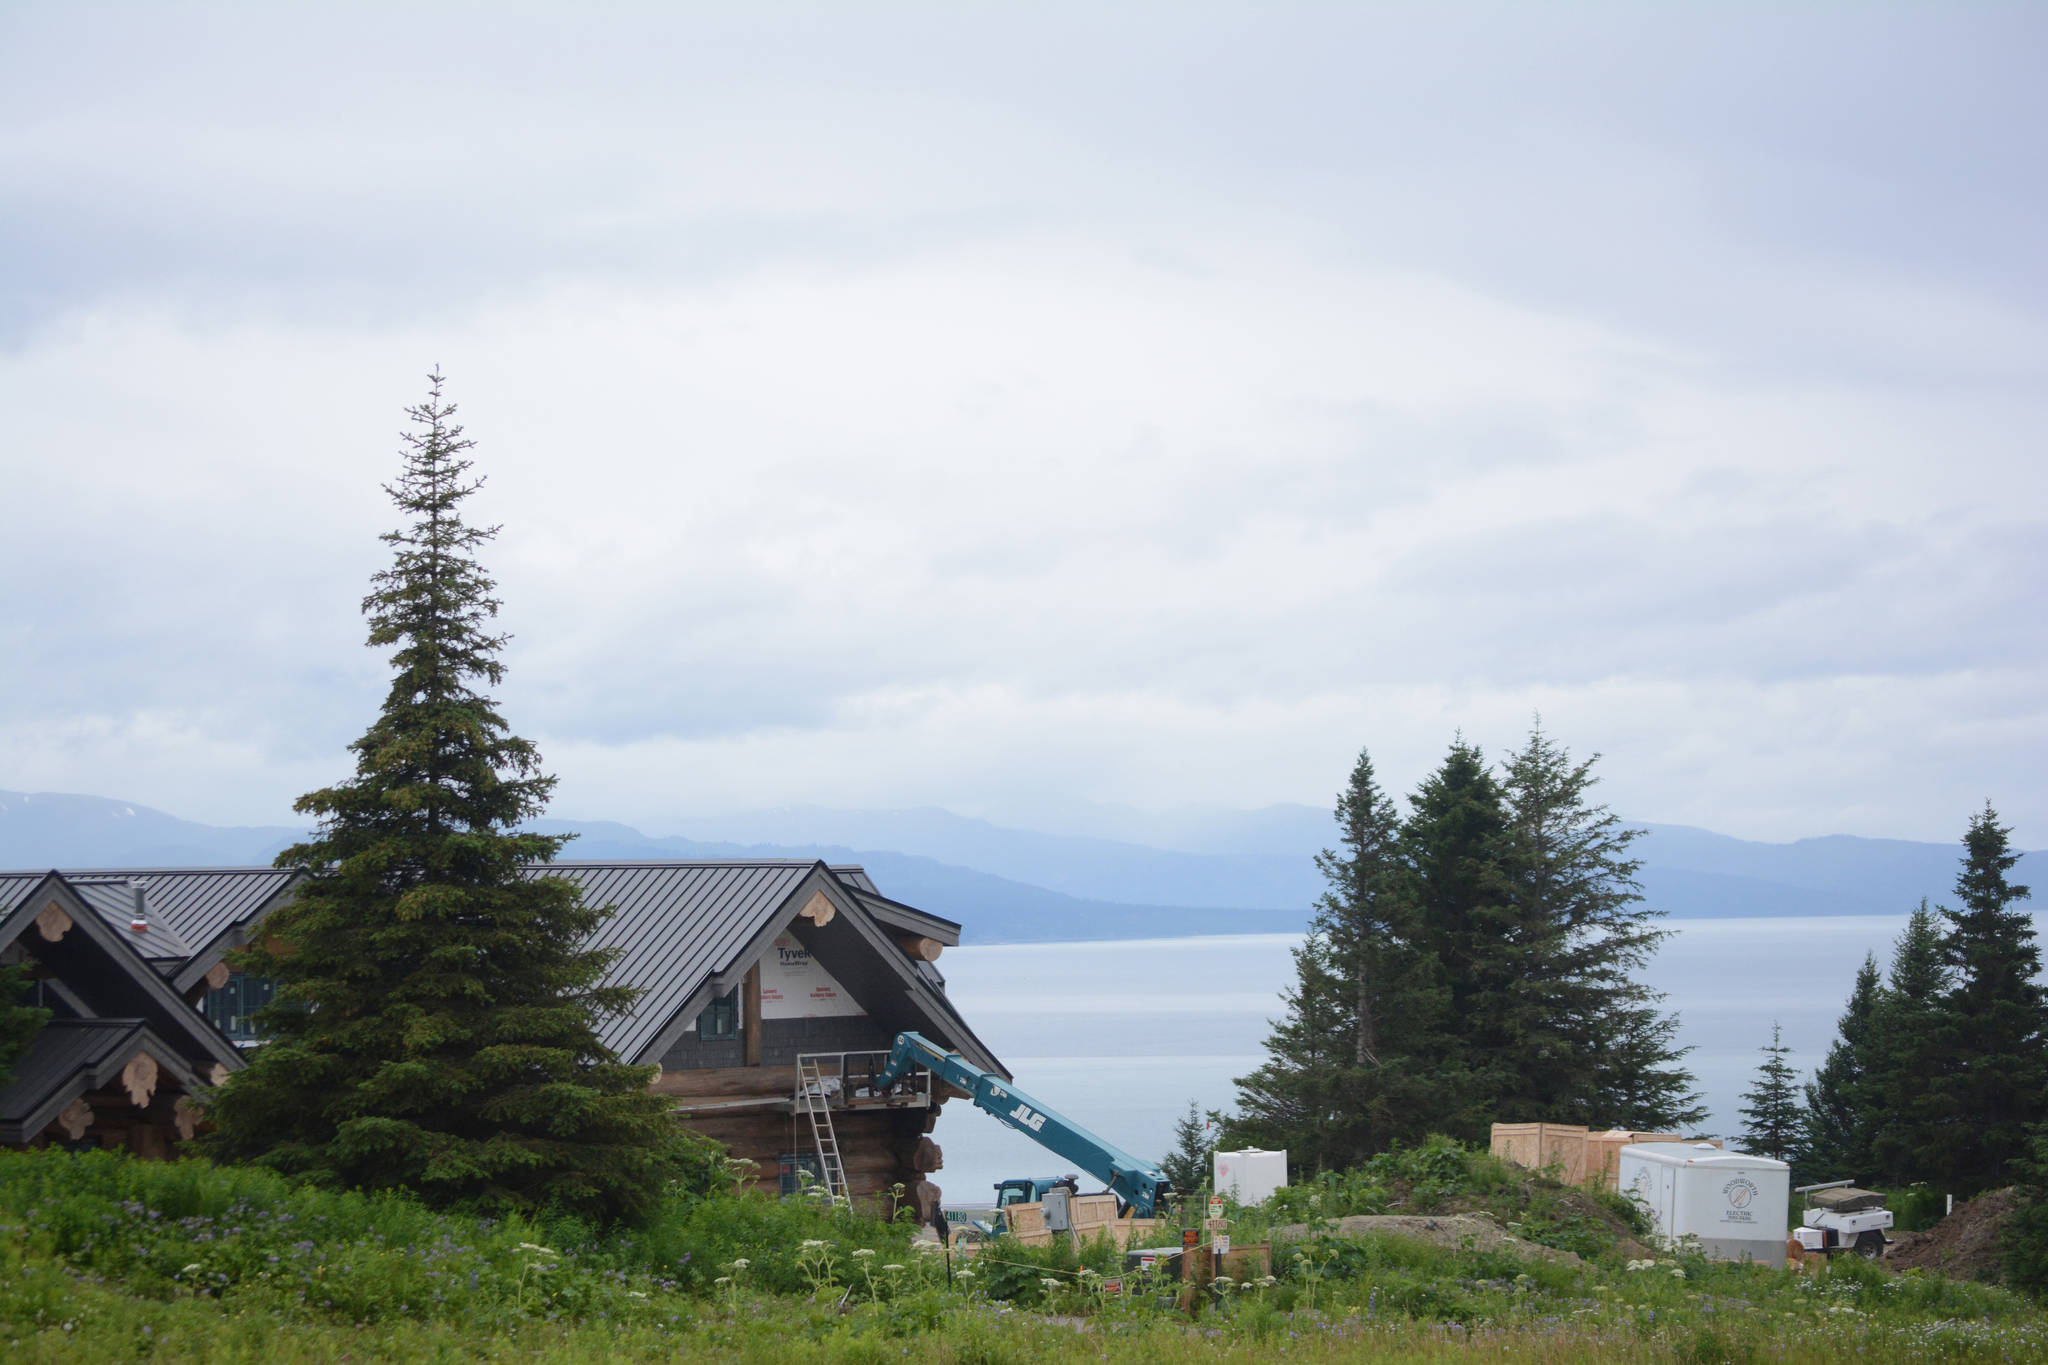 Part of country-western singer Zac Brown's log home is visible from Dorothy Drive overlooking Kachemak Bay in Homer, Alaska in this photo taken on July 9, 2018. A pedestrian easement to the right in this photo runs between Brown's property and his neighbor. Brown and other neighbors at the end of the rural road have petitioned to vacate a north-south section line easement that crosses Dorothy Drive and also runs south to a neighboring subdivision. (Photo by Michael Armstrong/Homer News)